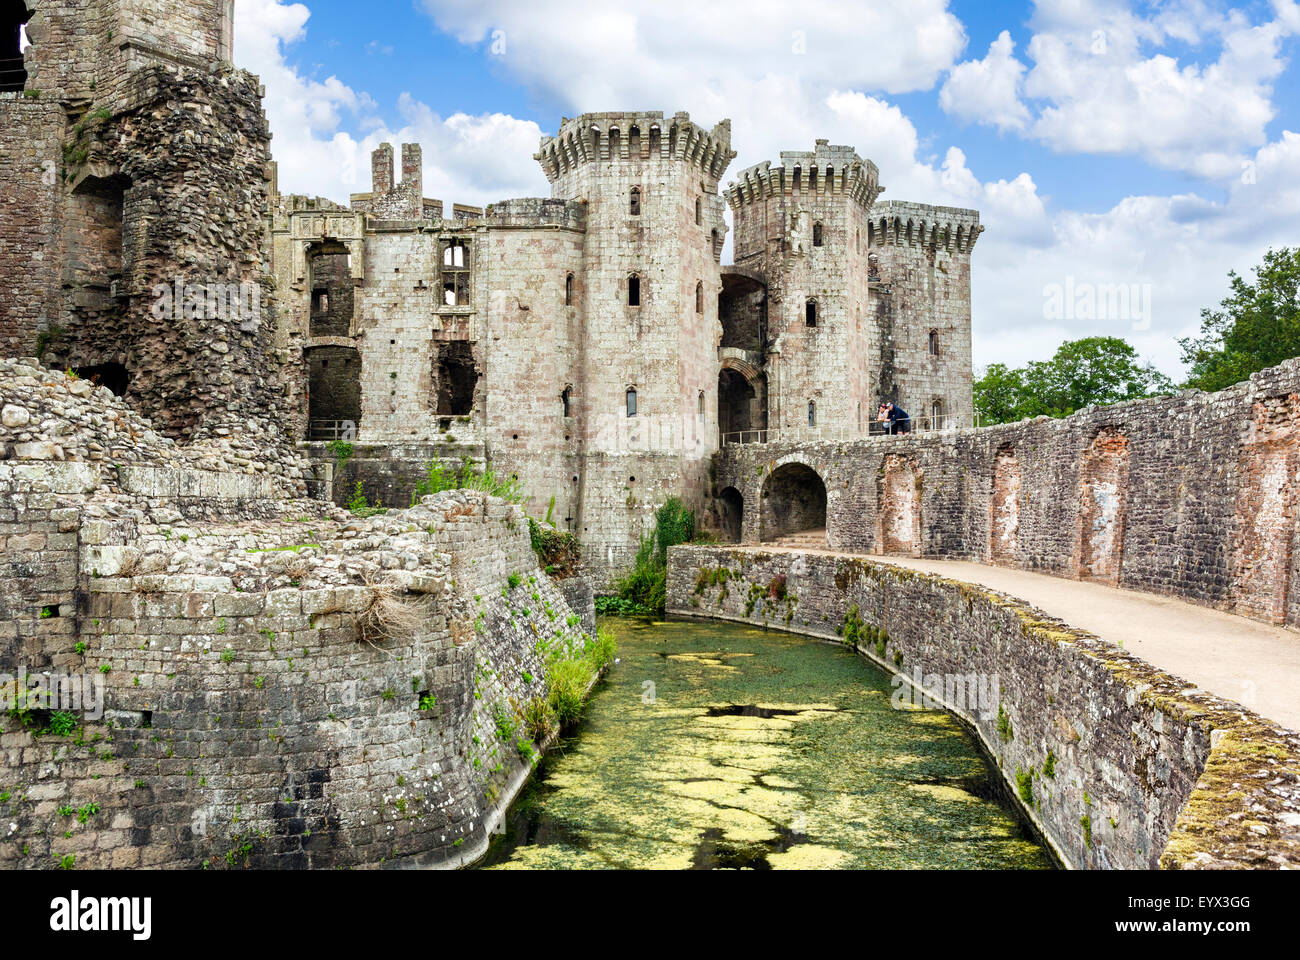 The ruins of Raglan Castle, Raglan, Monmouthshire, Wales, UK - Stock Image